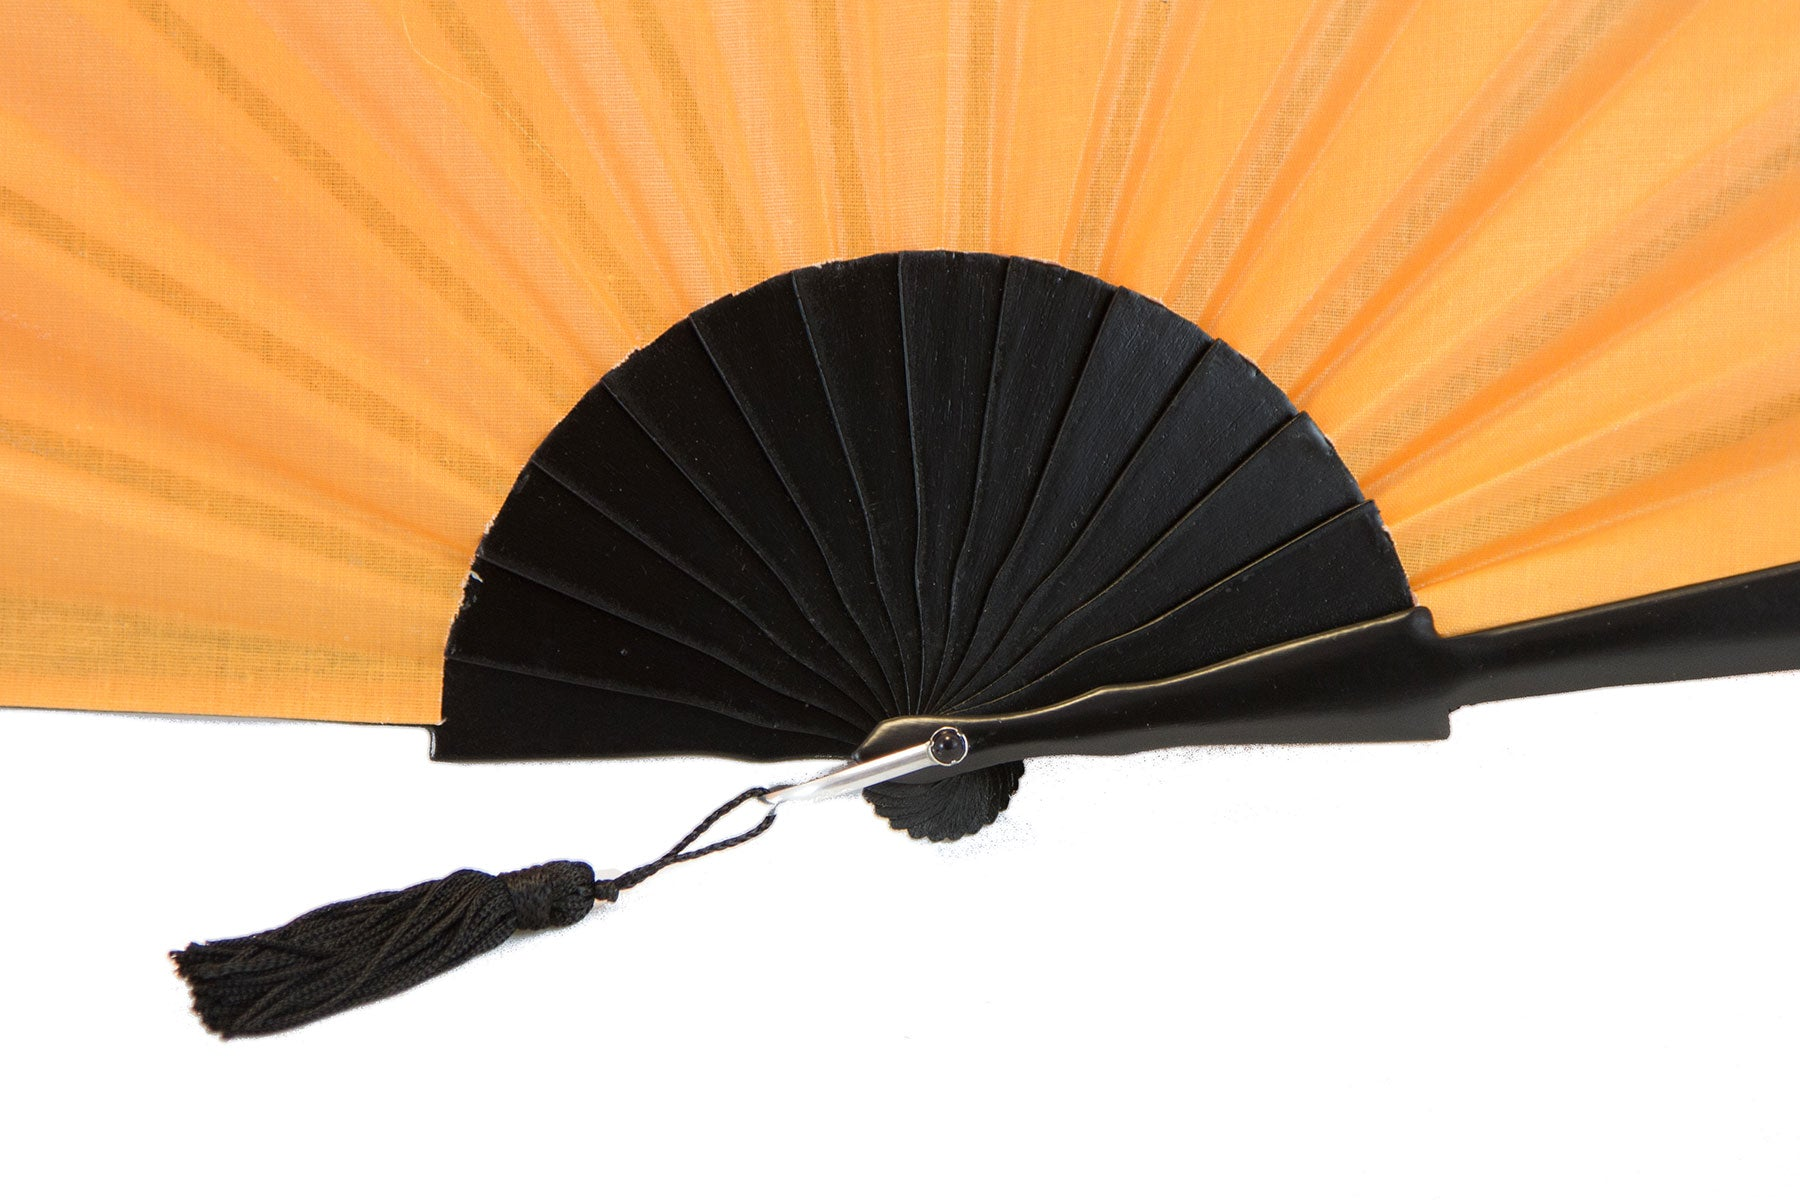 Orange Glastonbury festival hand fan detail